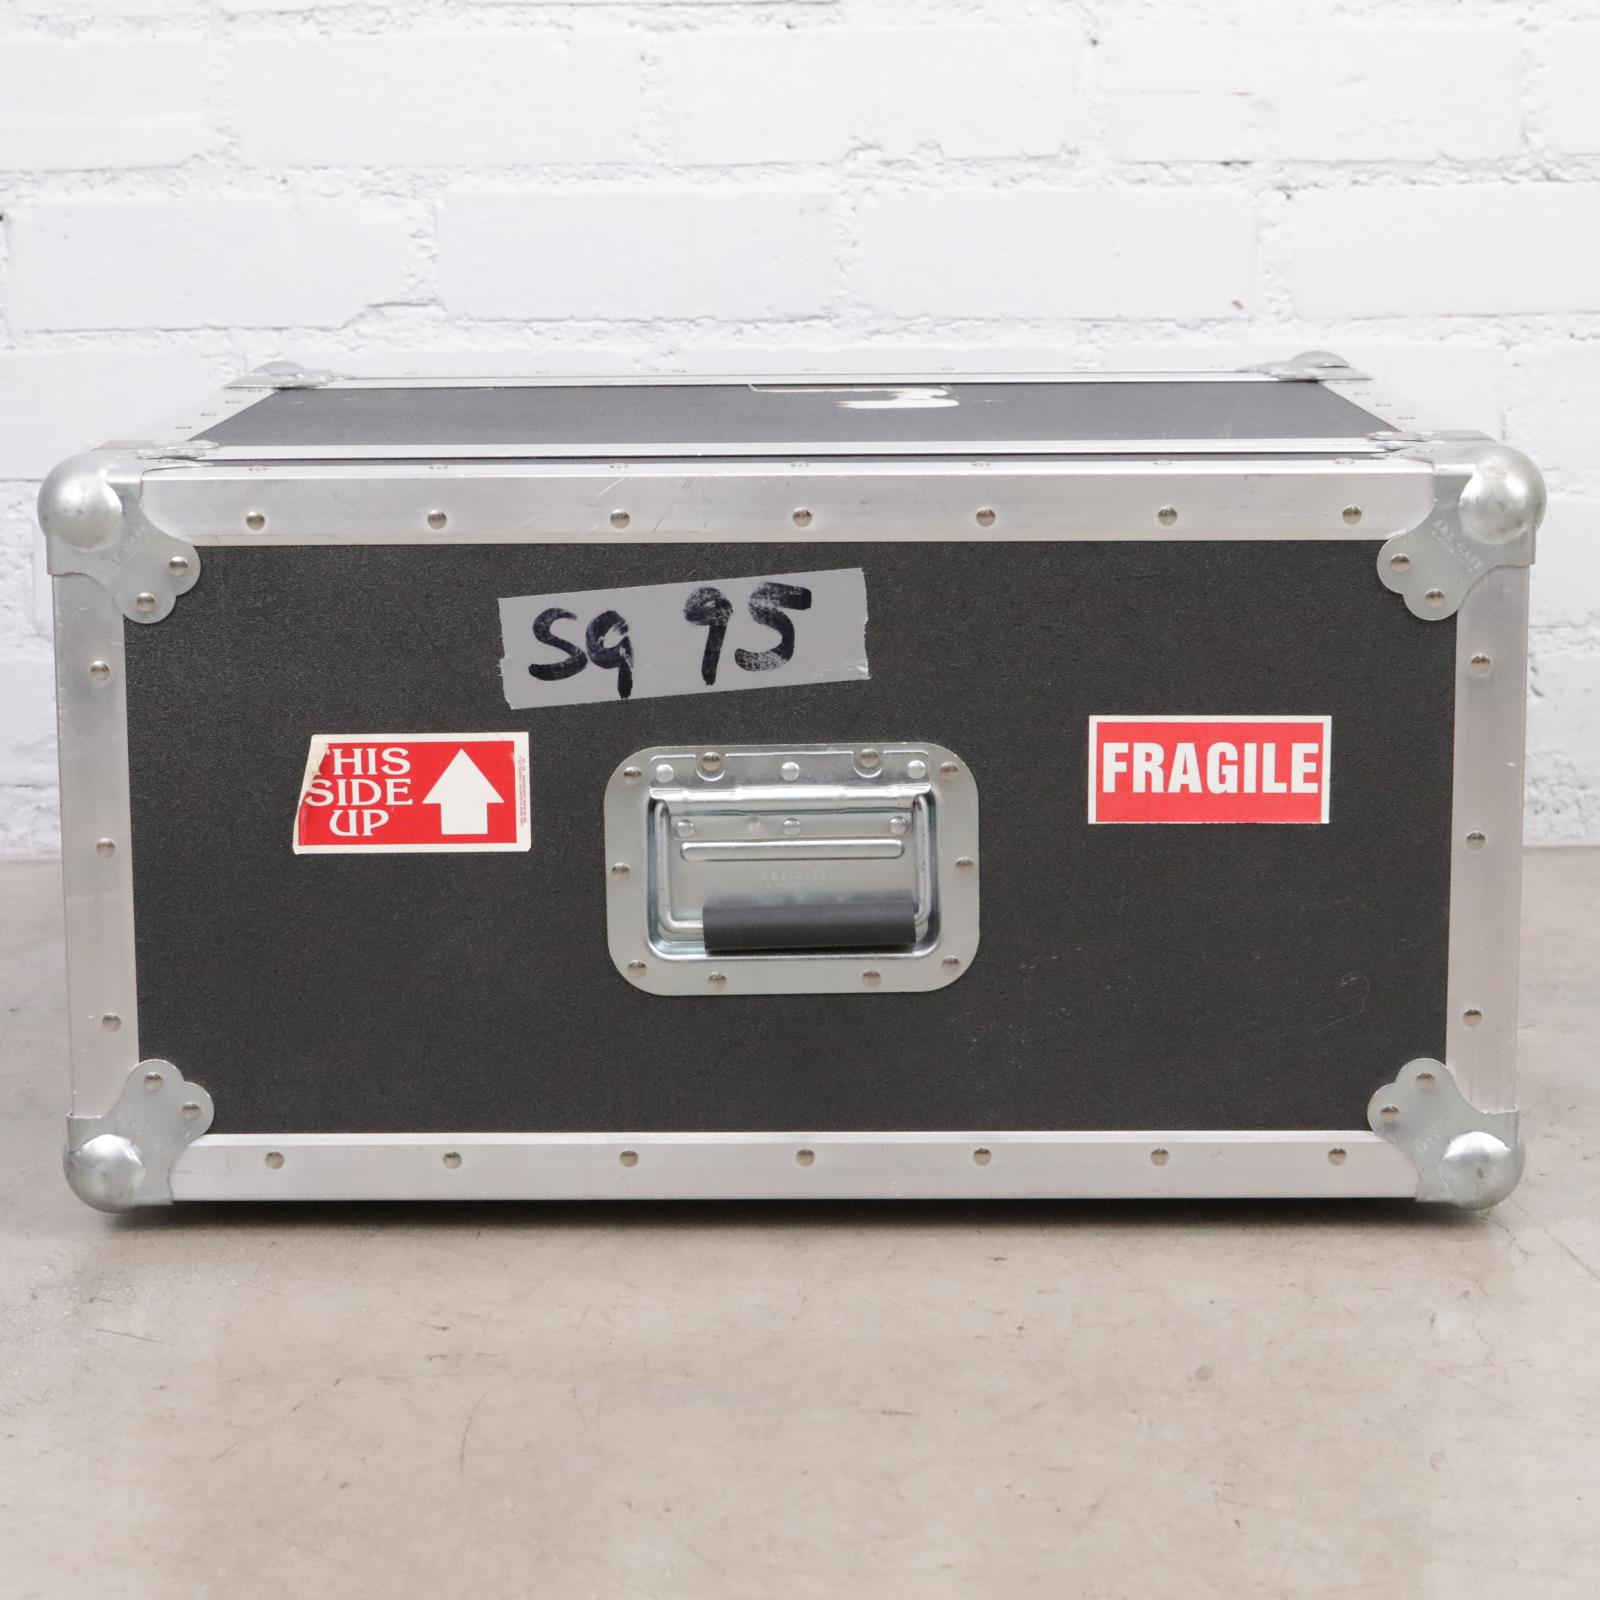 A&S 4 Space 4U ATA Shockmount Rack Tour Road Case Owned By David Roback #44628